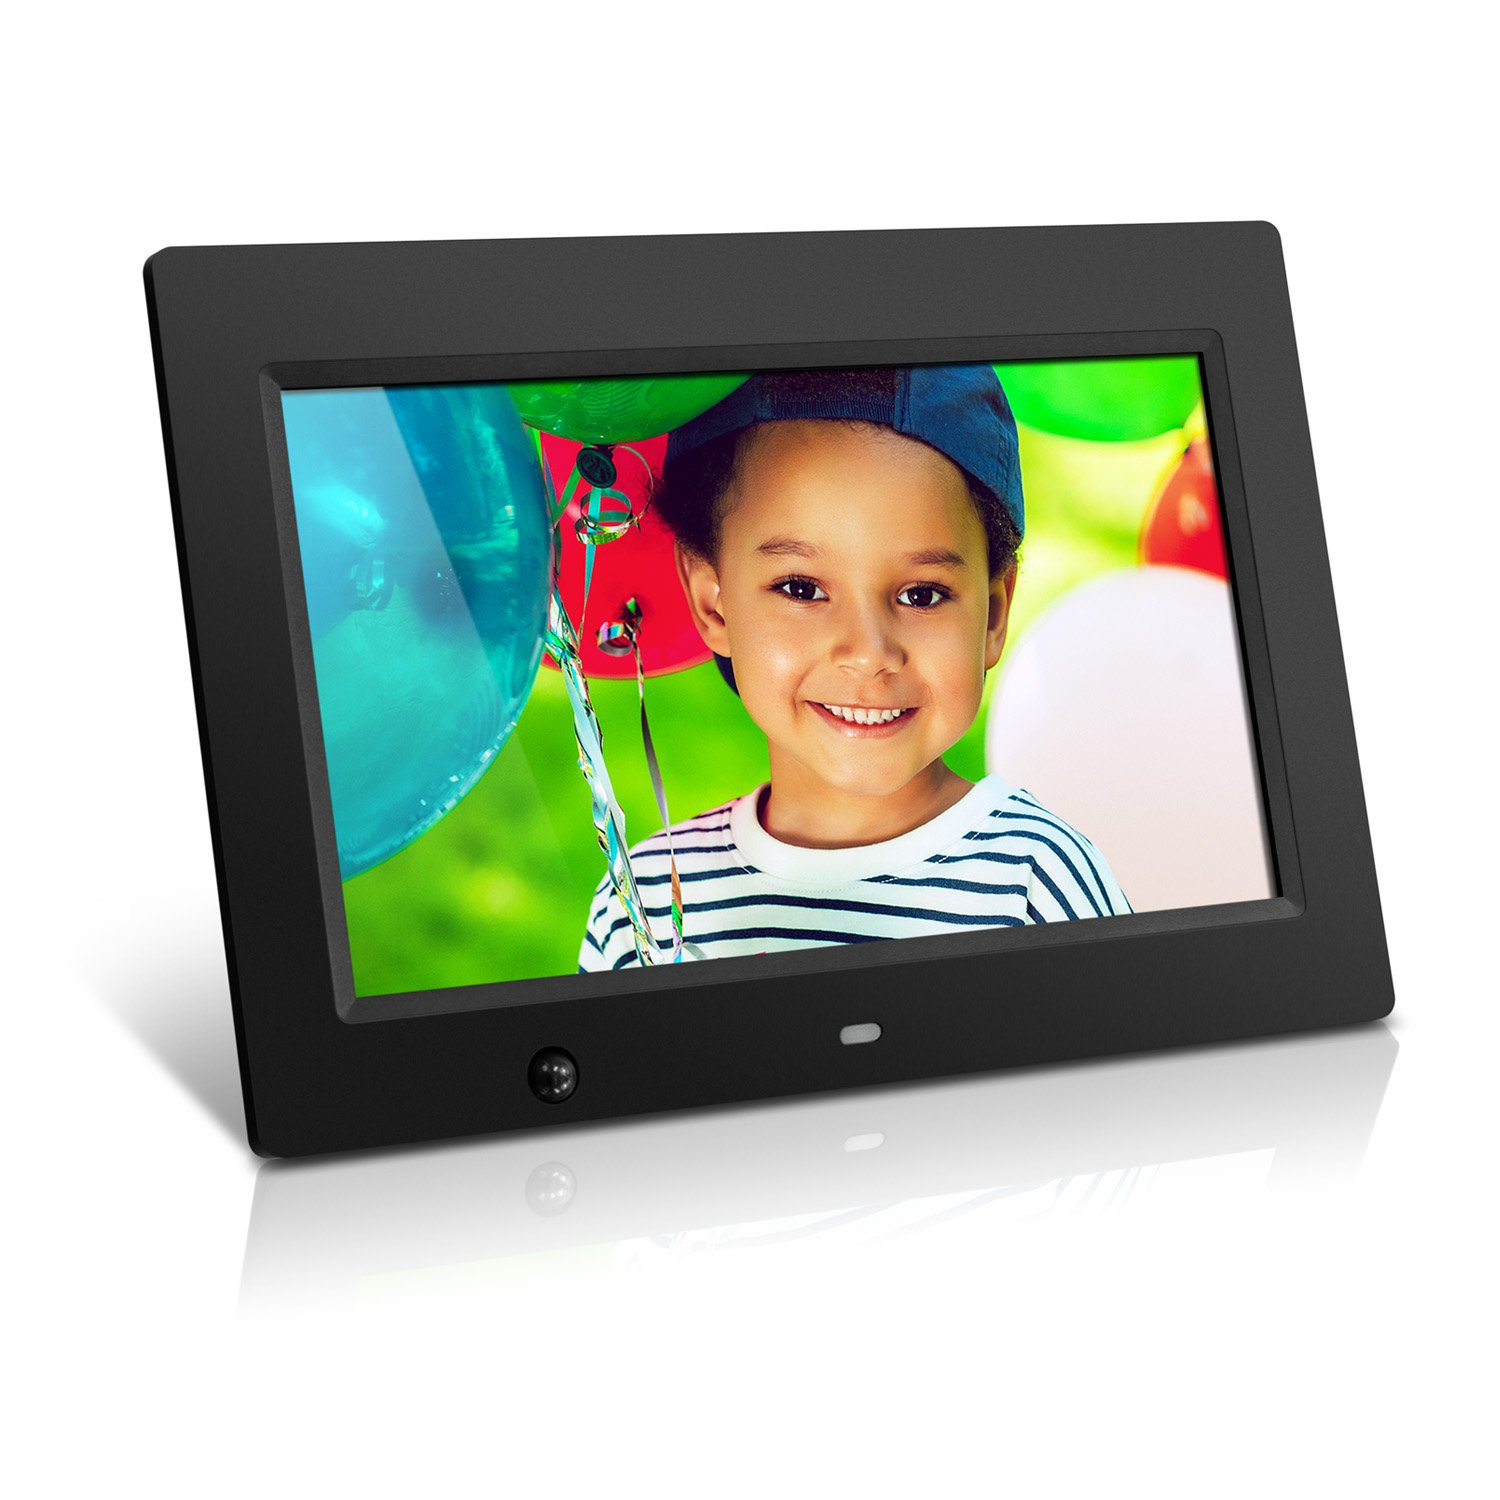 Buy Aluratek Admpf310f 10 Inch Digital Photo Frame Black Online